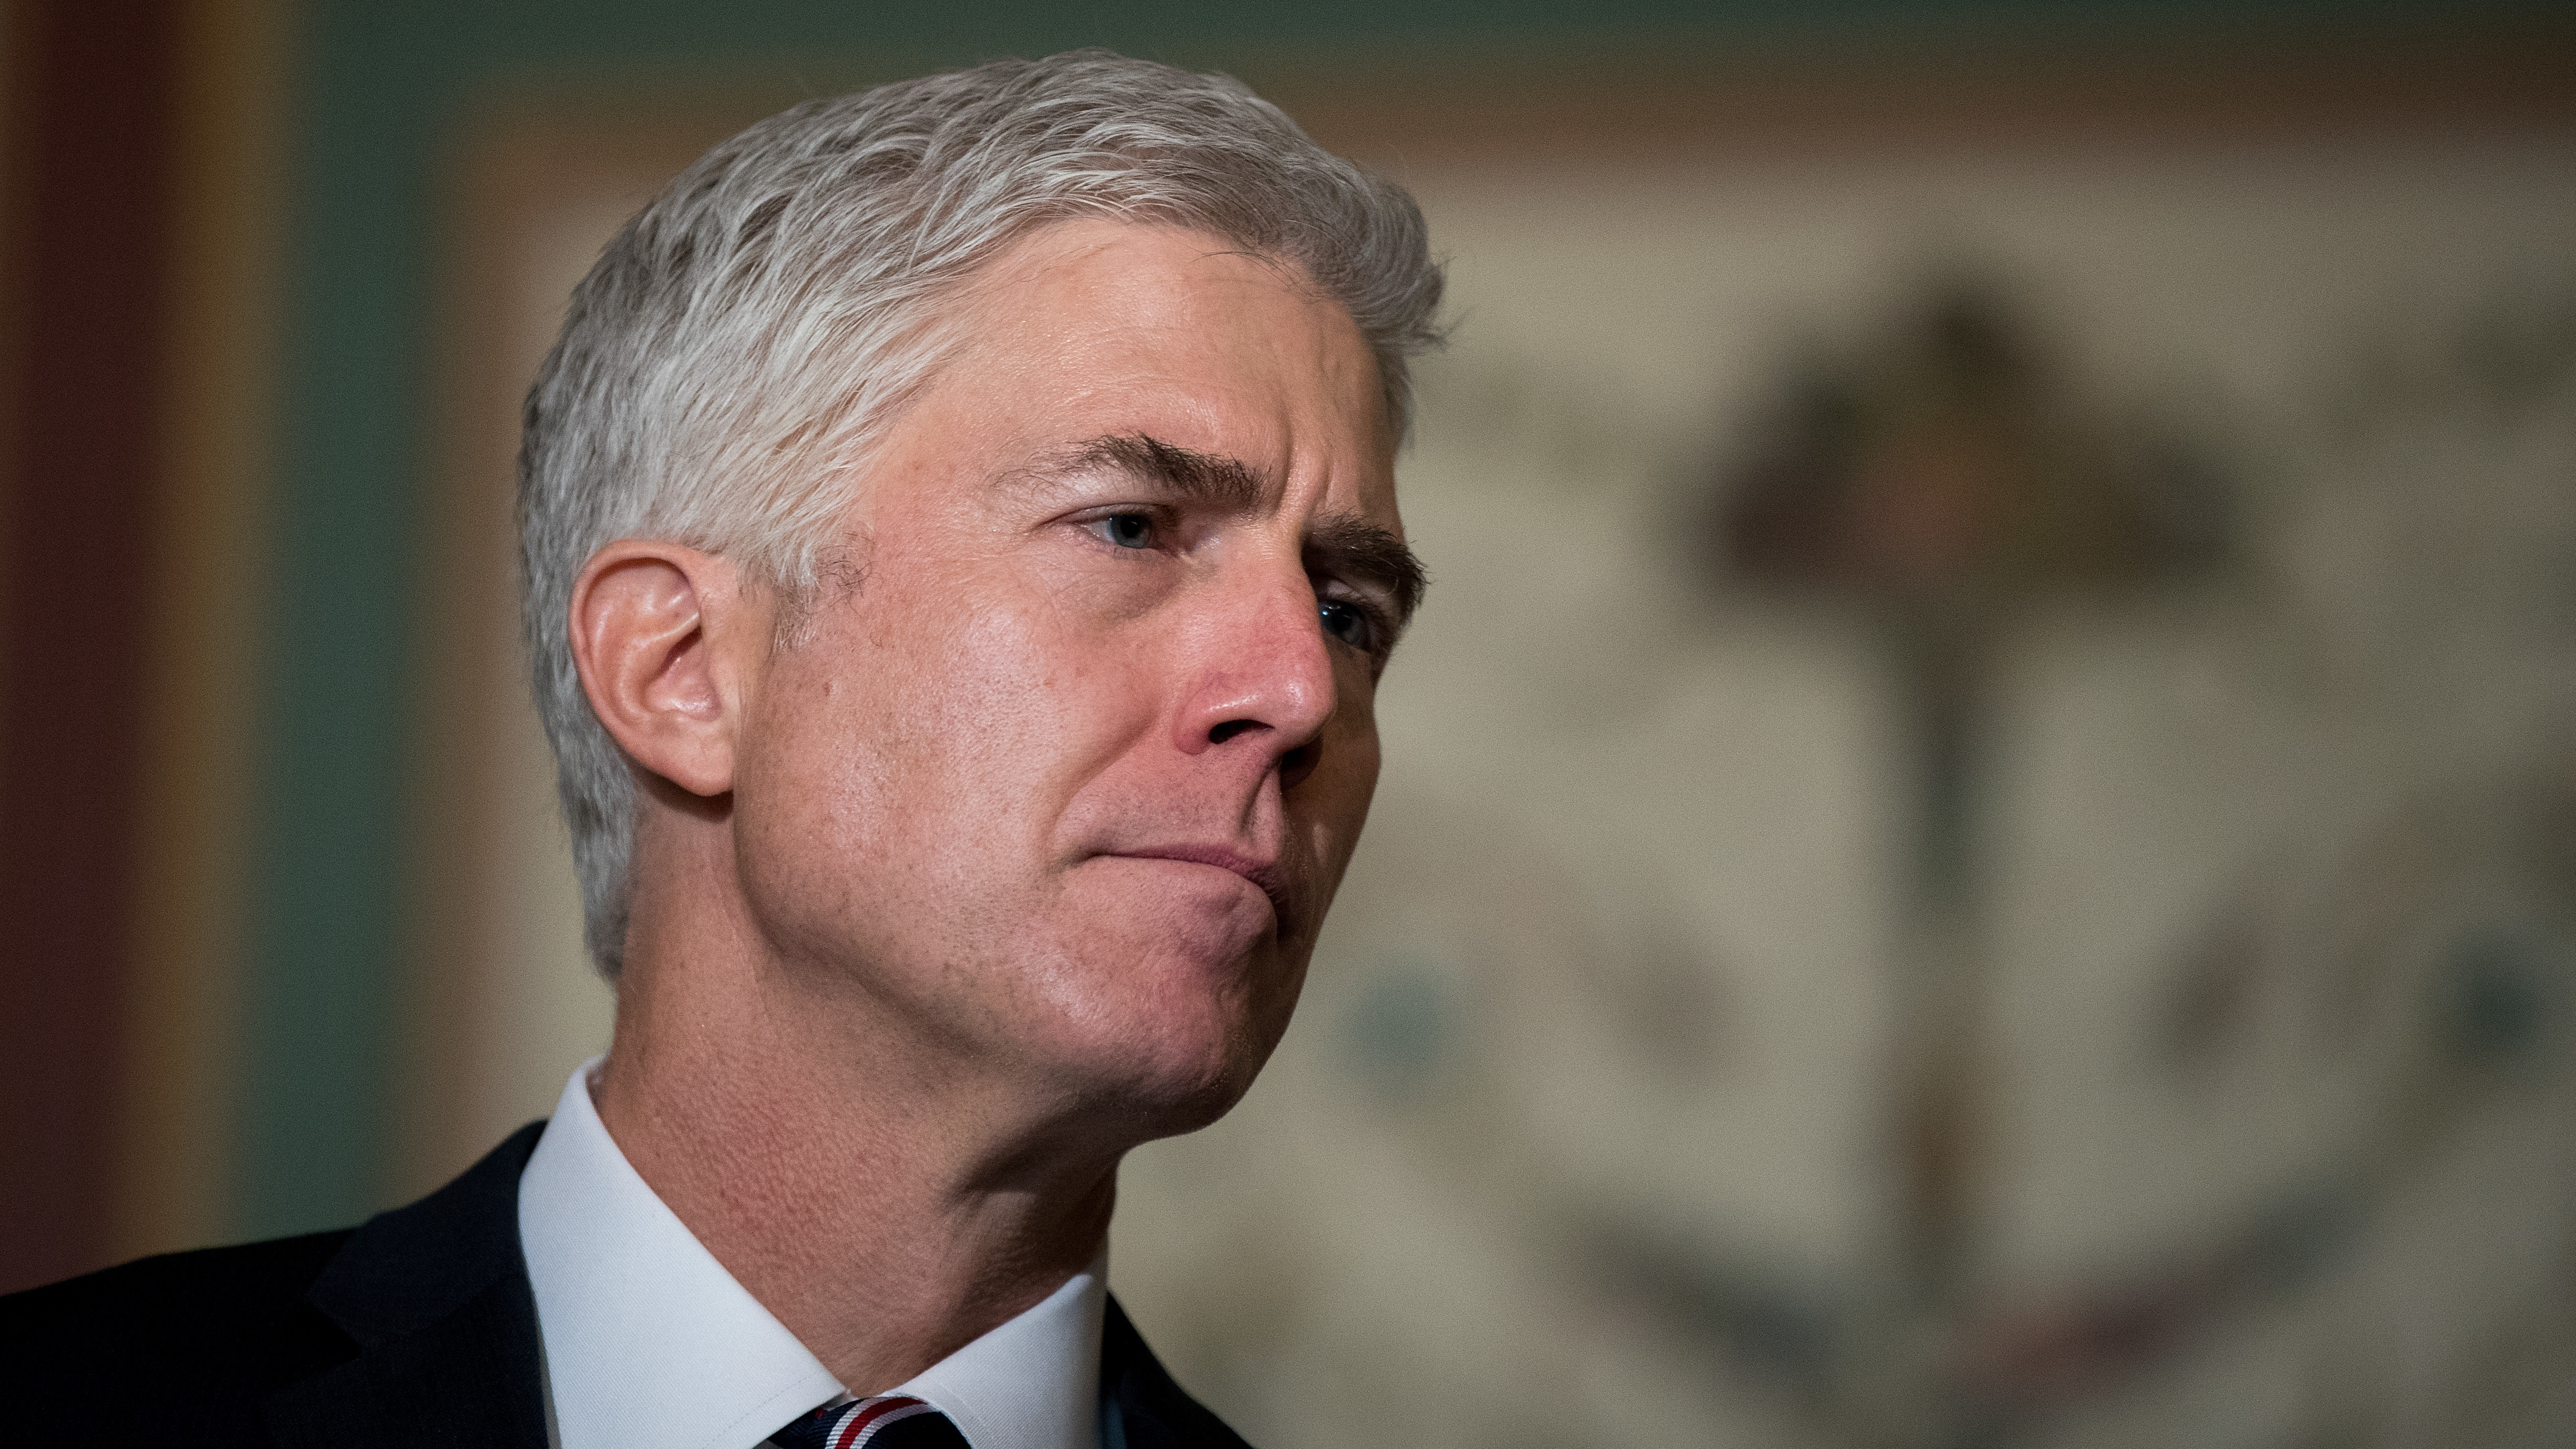 Supreme Court nominee Neil Gorsuch appears before reporters before a meeting on Capitol Hill on Feb. 1.